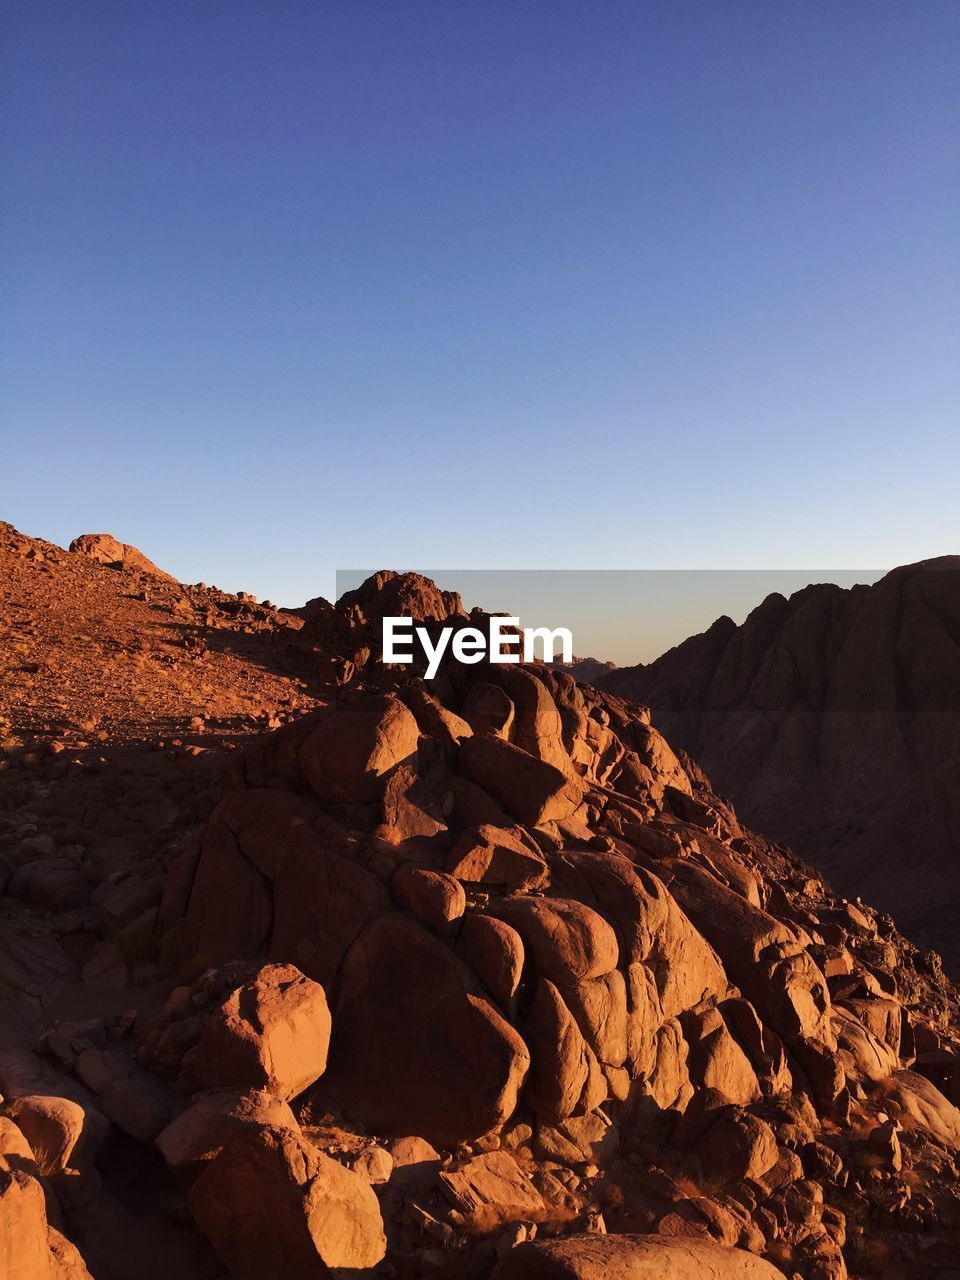 sky, rock, clear sky, scenics - nature, copy space, rock - object, beauty in nature, solid, tranquility, nature, tranquil scene, mountain, rock formation, landscape, sunlight, no people, environment, non-urban scene, arid climate, geology, climate, mountain range, outdoors, formation, eroded